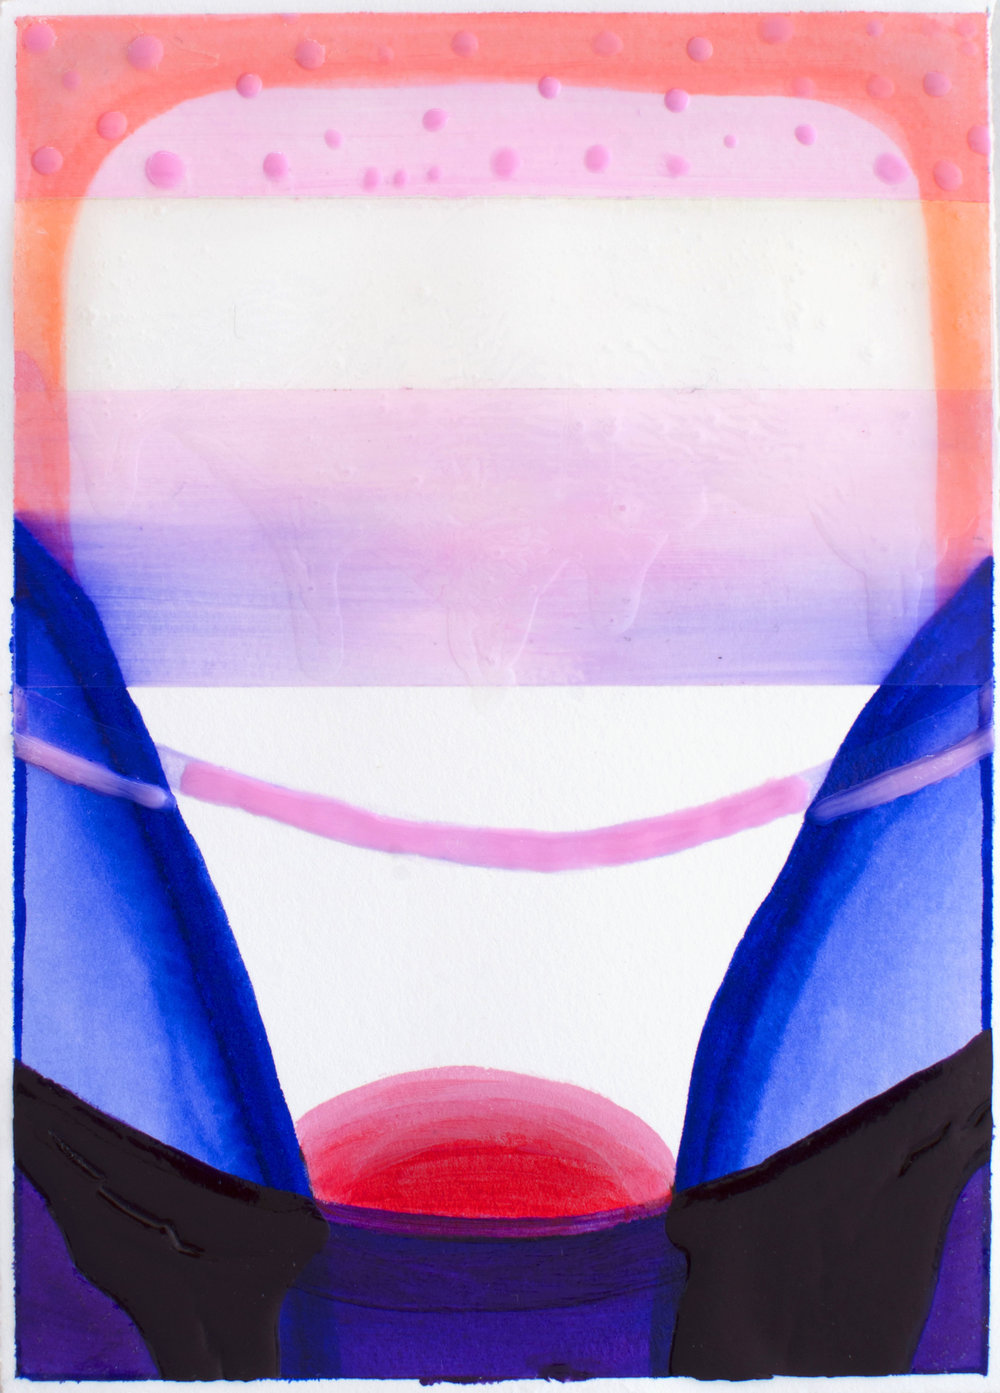 """Rises - Elise Thompson7"""" x 5"""" watercolor and acrylic on paper, framed$175"""